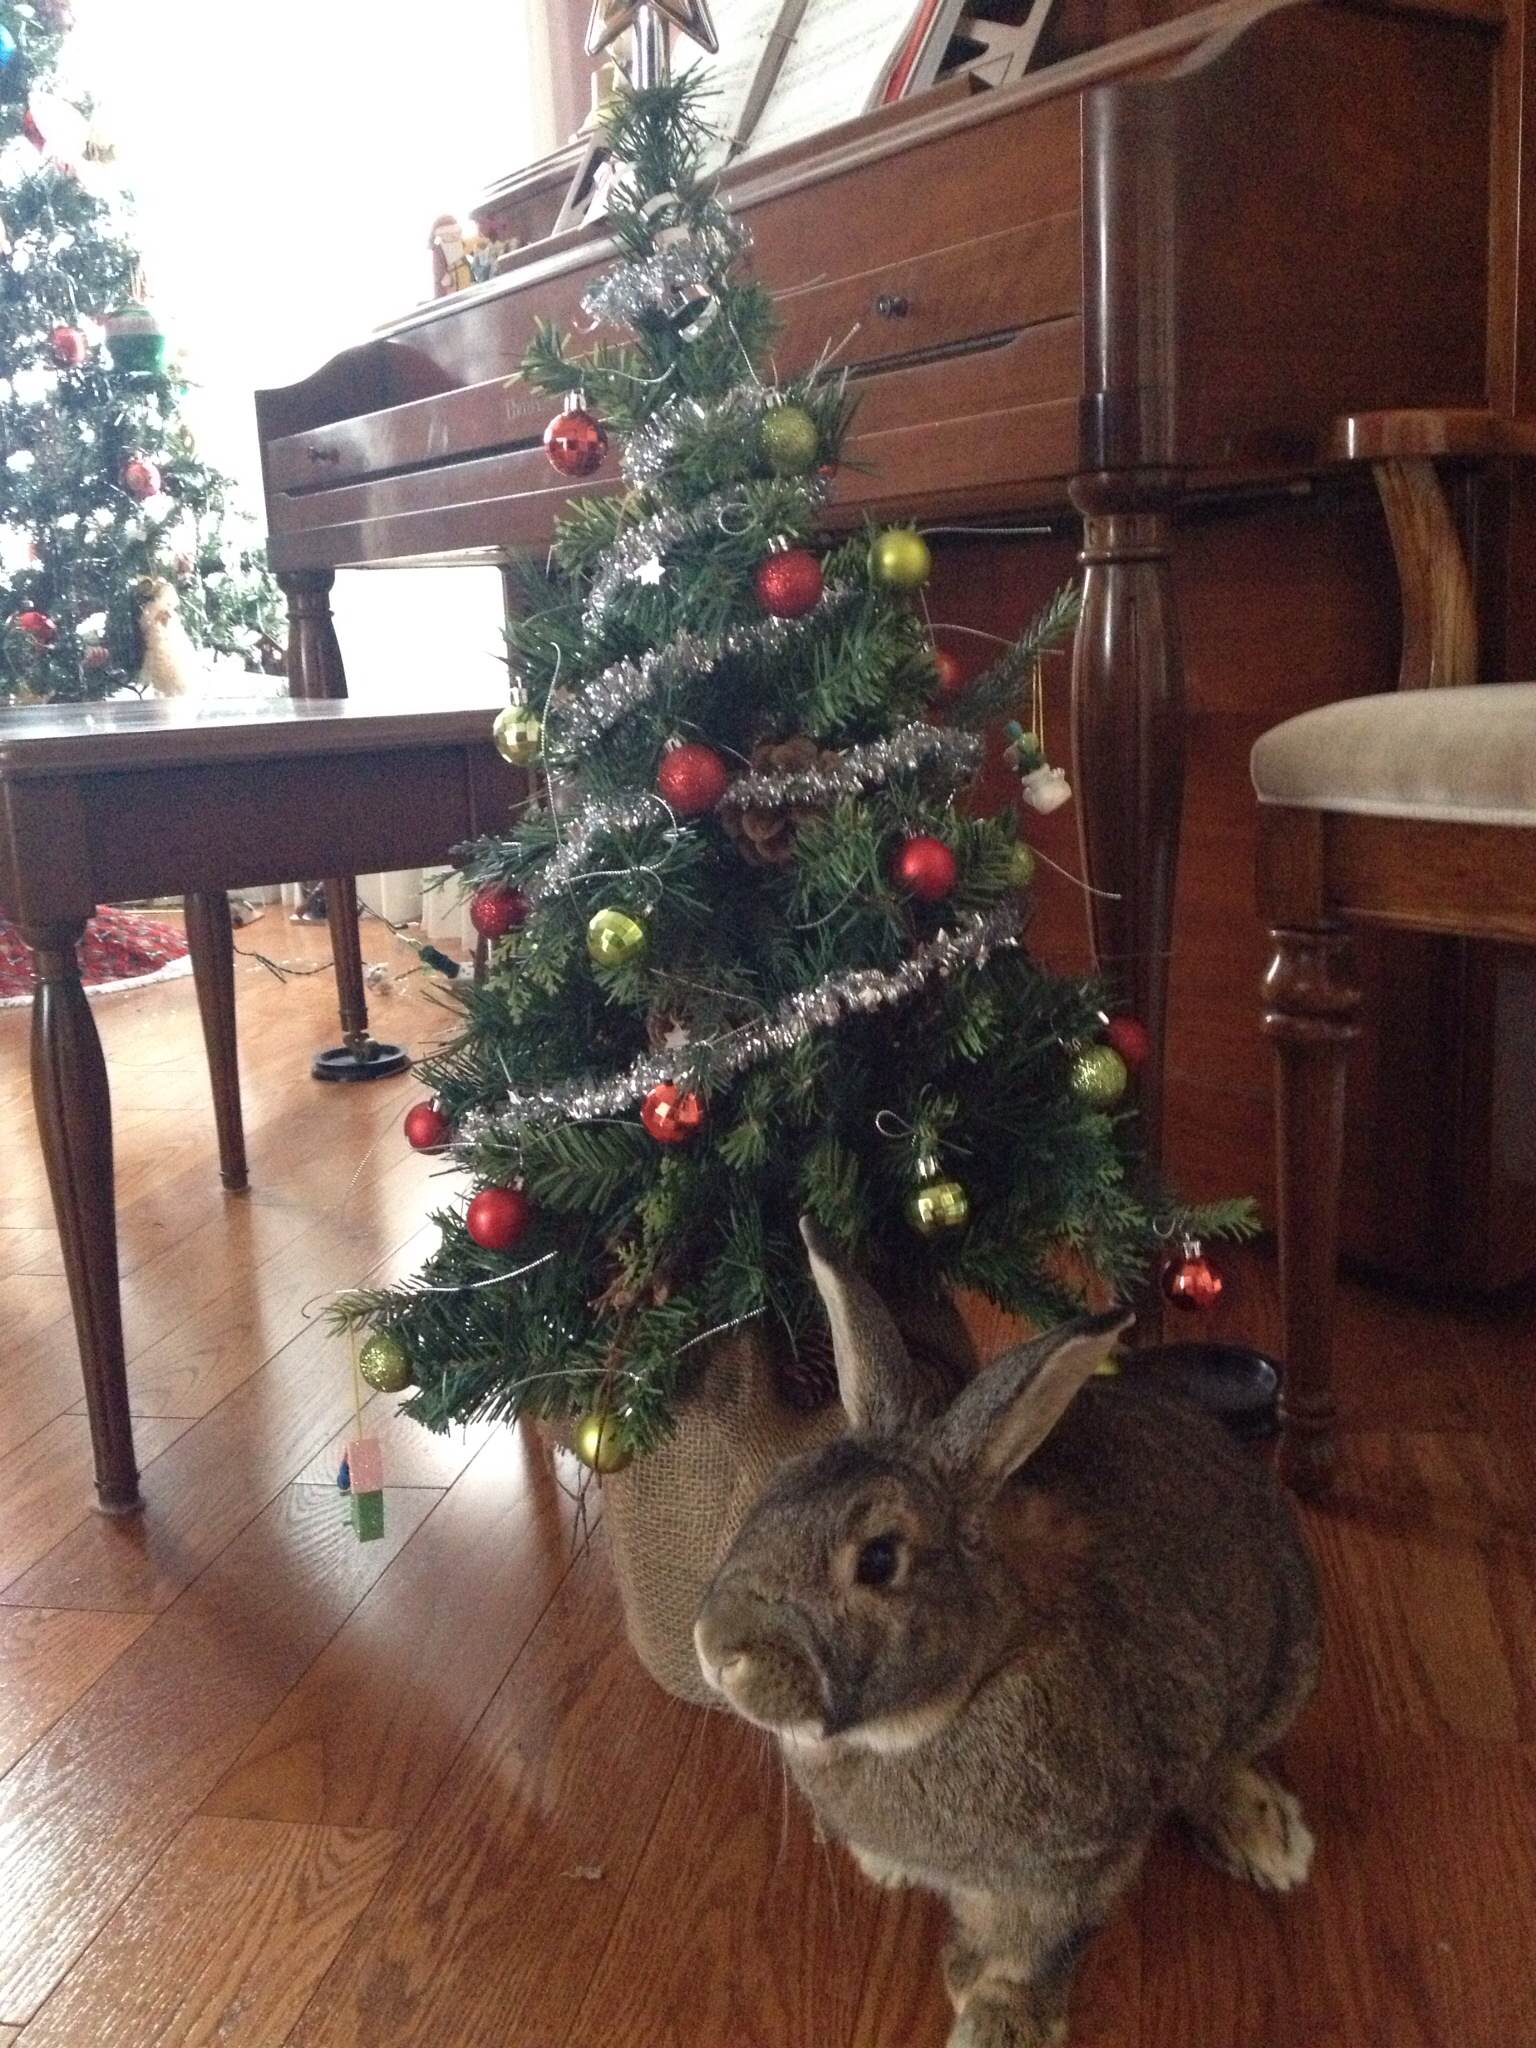 Bunny Gets His Own Bunny-Sized Christmas Tree